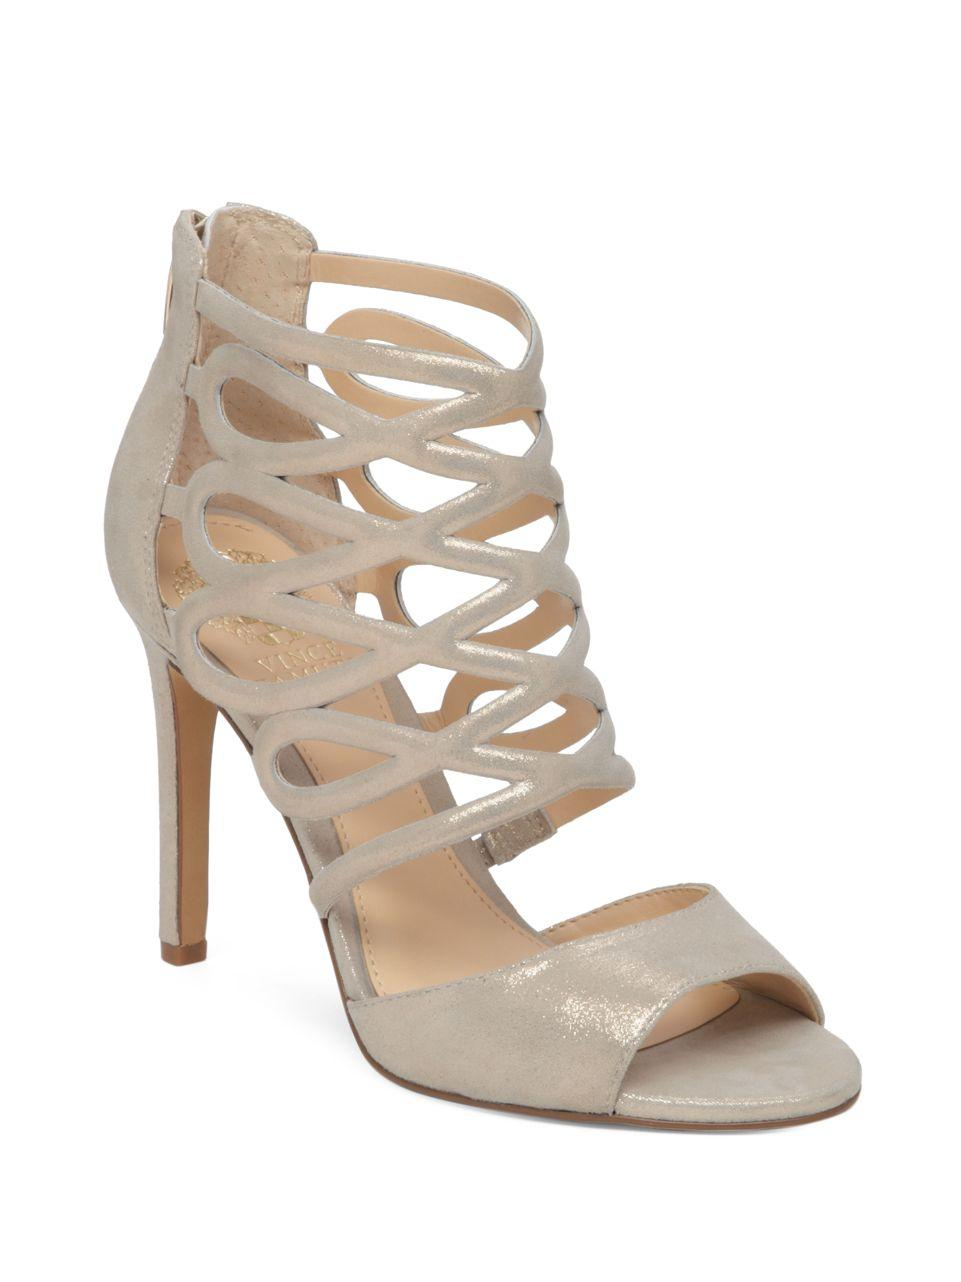 Lyst Vince Camuto Kirsi Leather Dress Sandals In Metallic